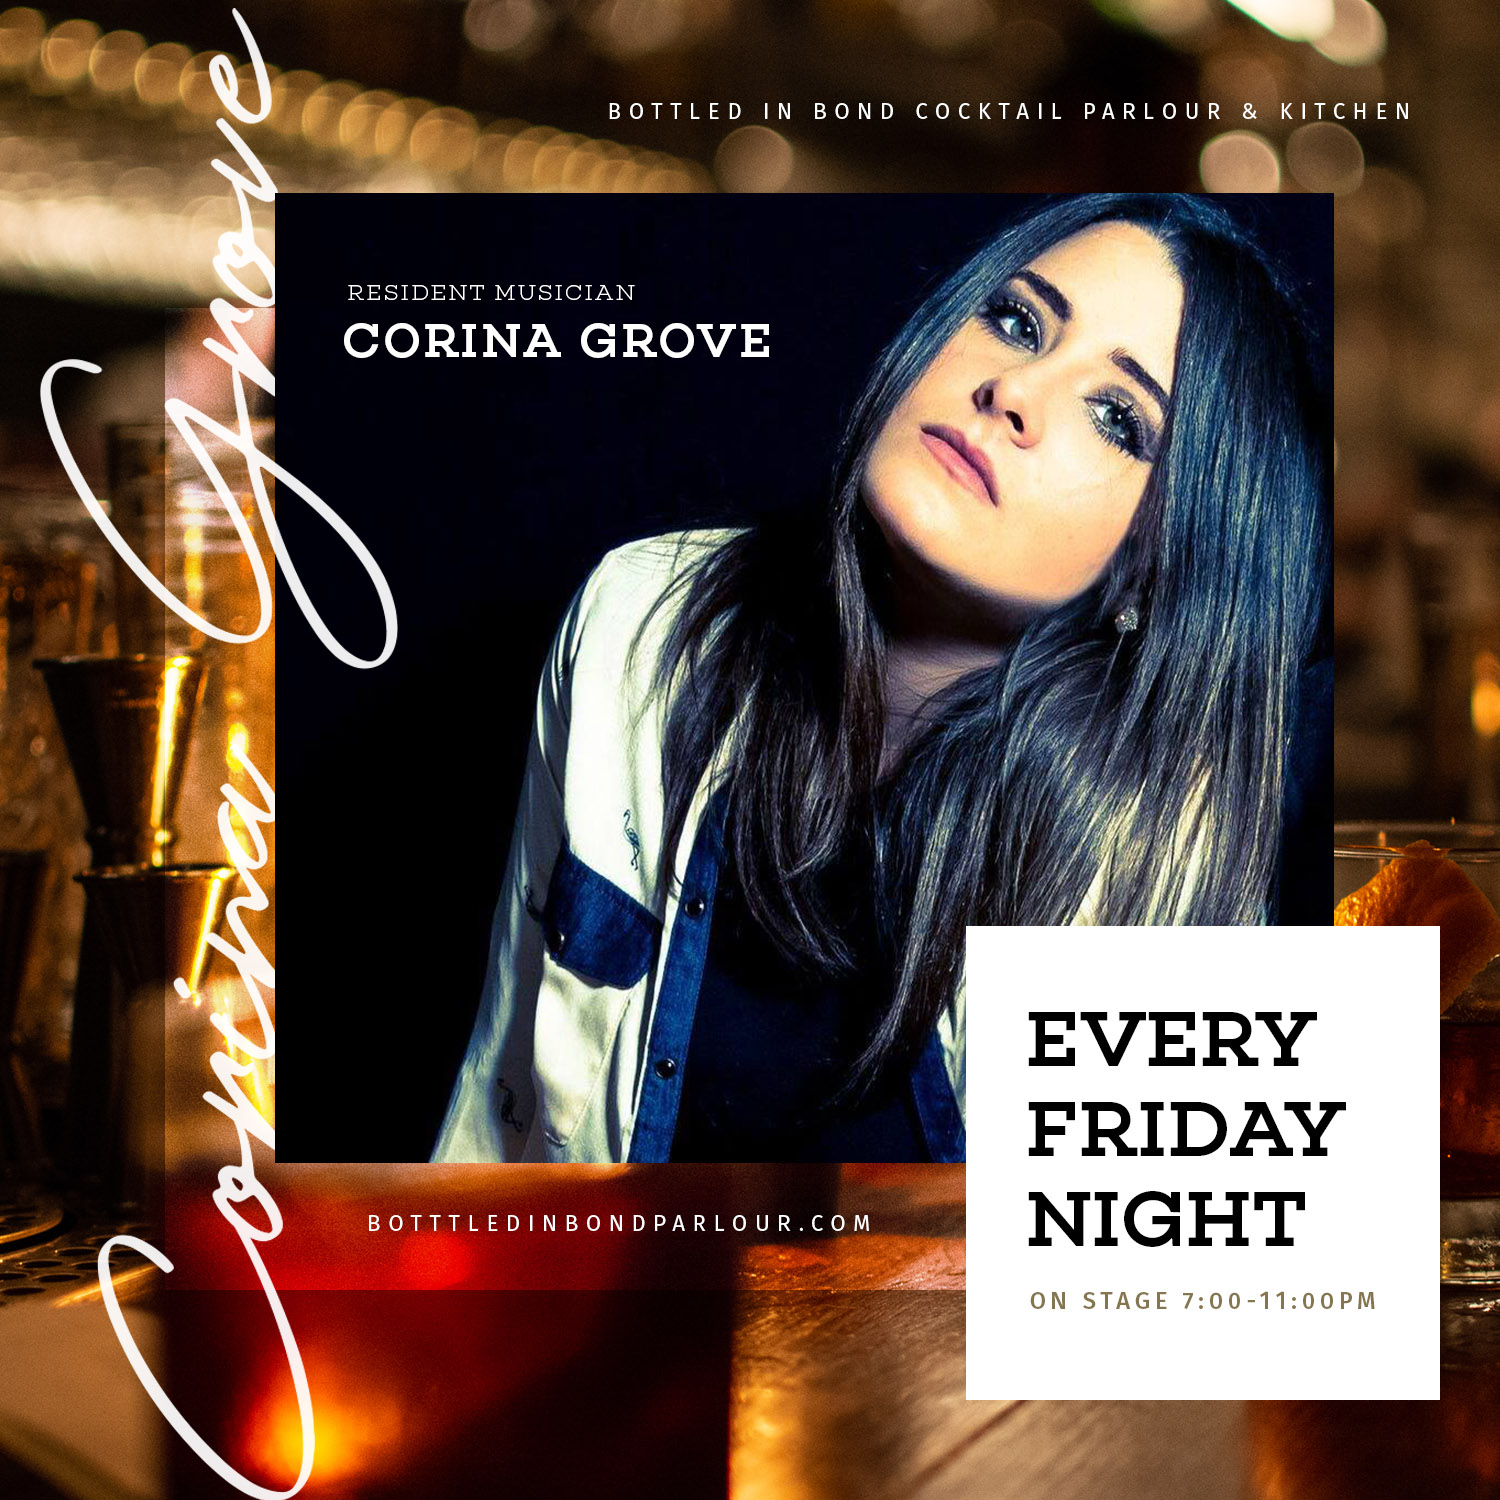 Corina Grove resident musician live music every Friday night at Bottled in Bond in Frisco, Texas